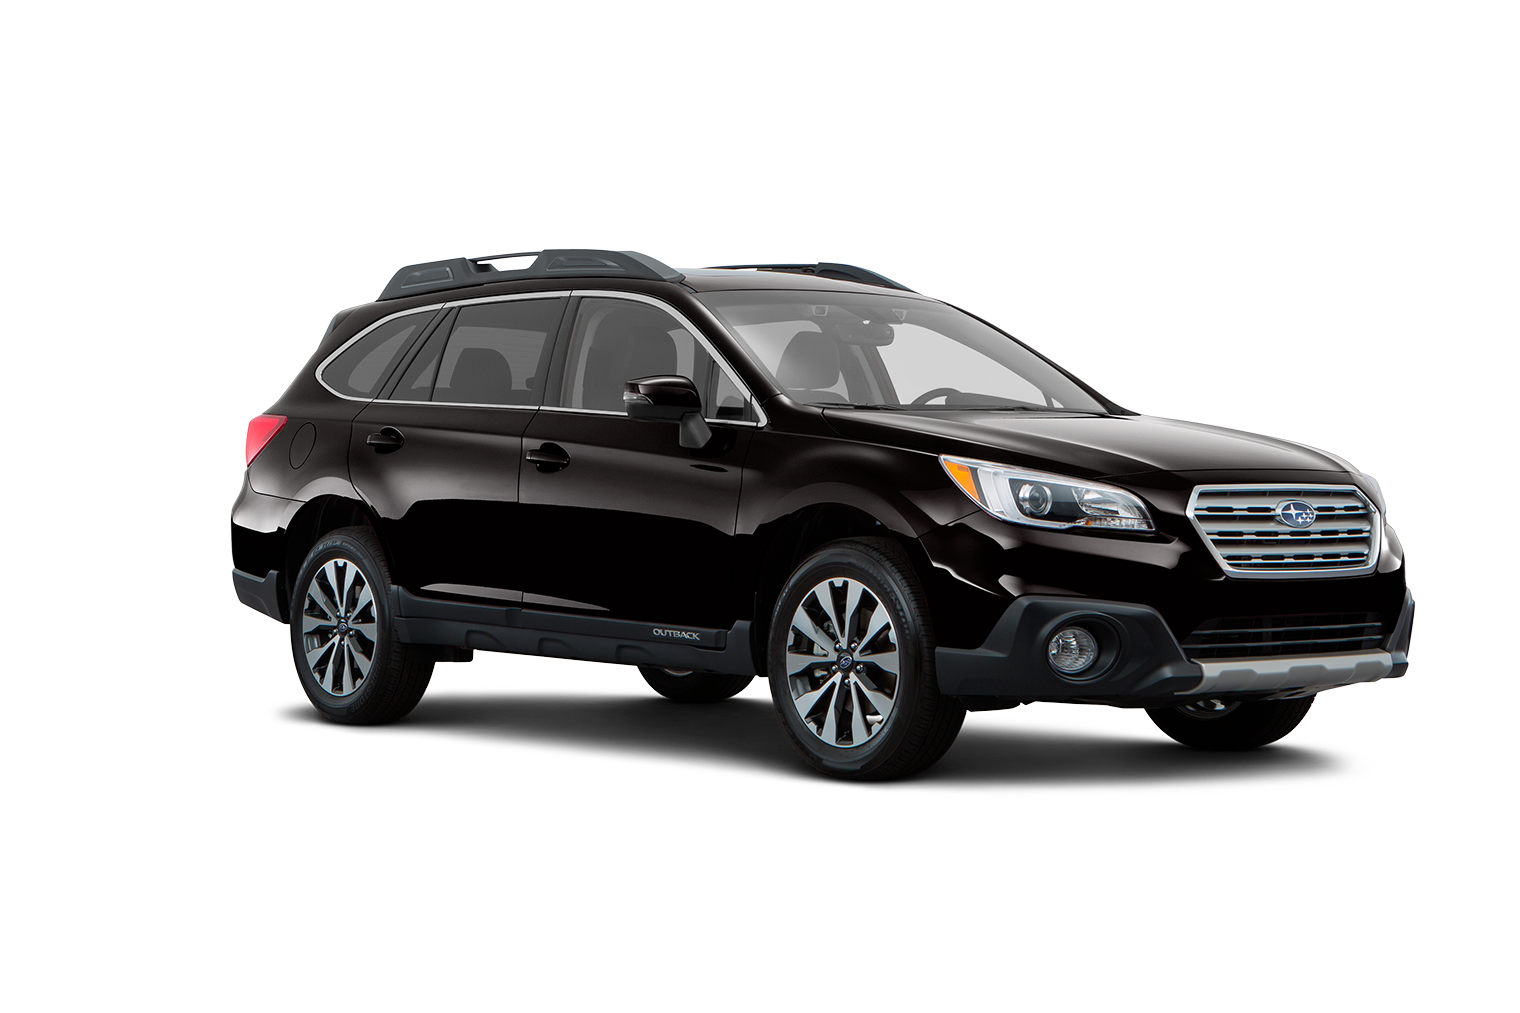 Build Your Own Subaru >> Build Your Own Subaru Outback On The Official Site Customize An